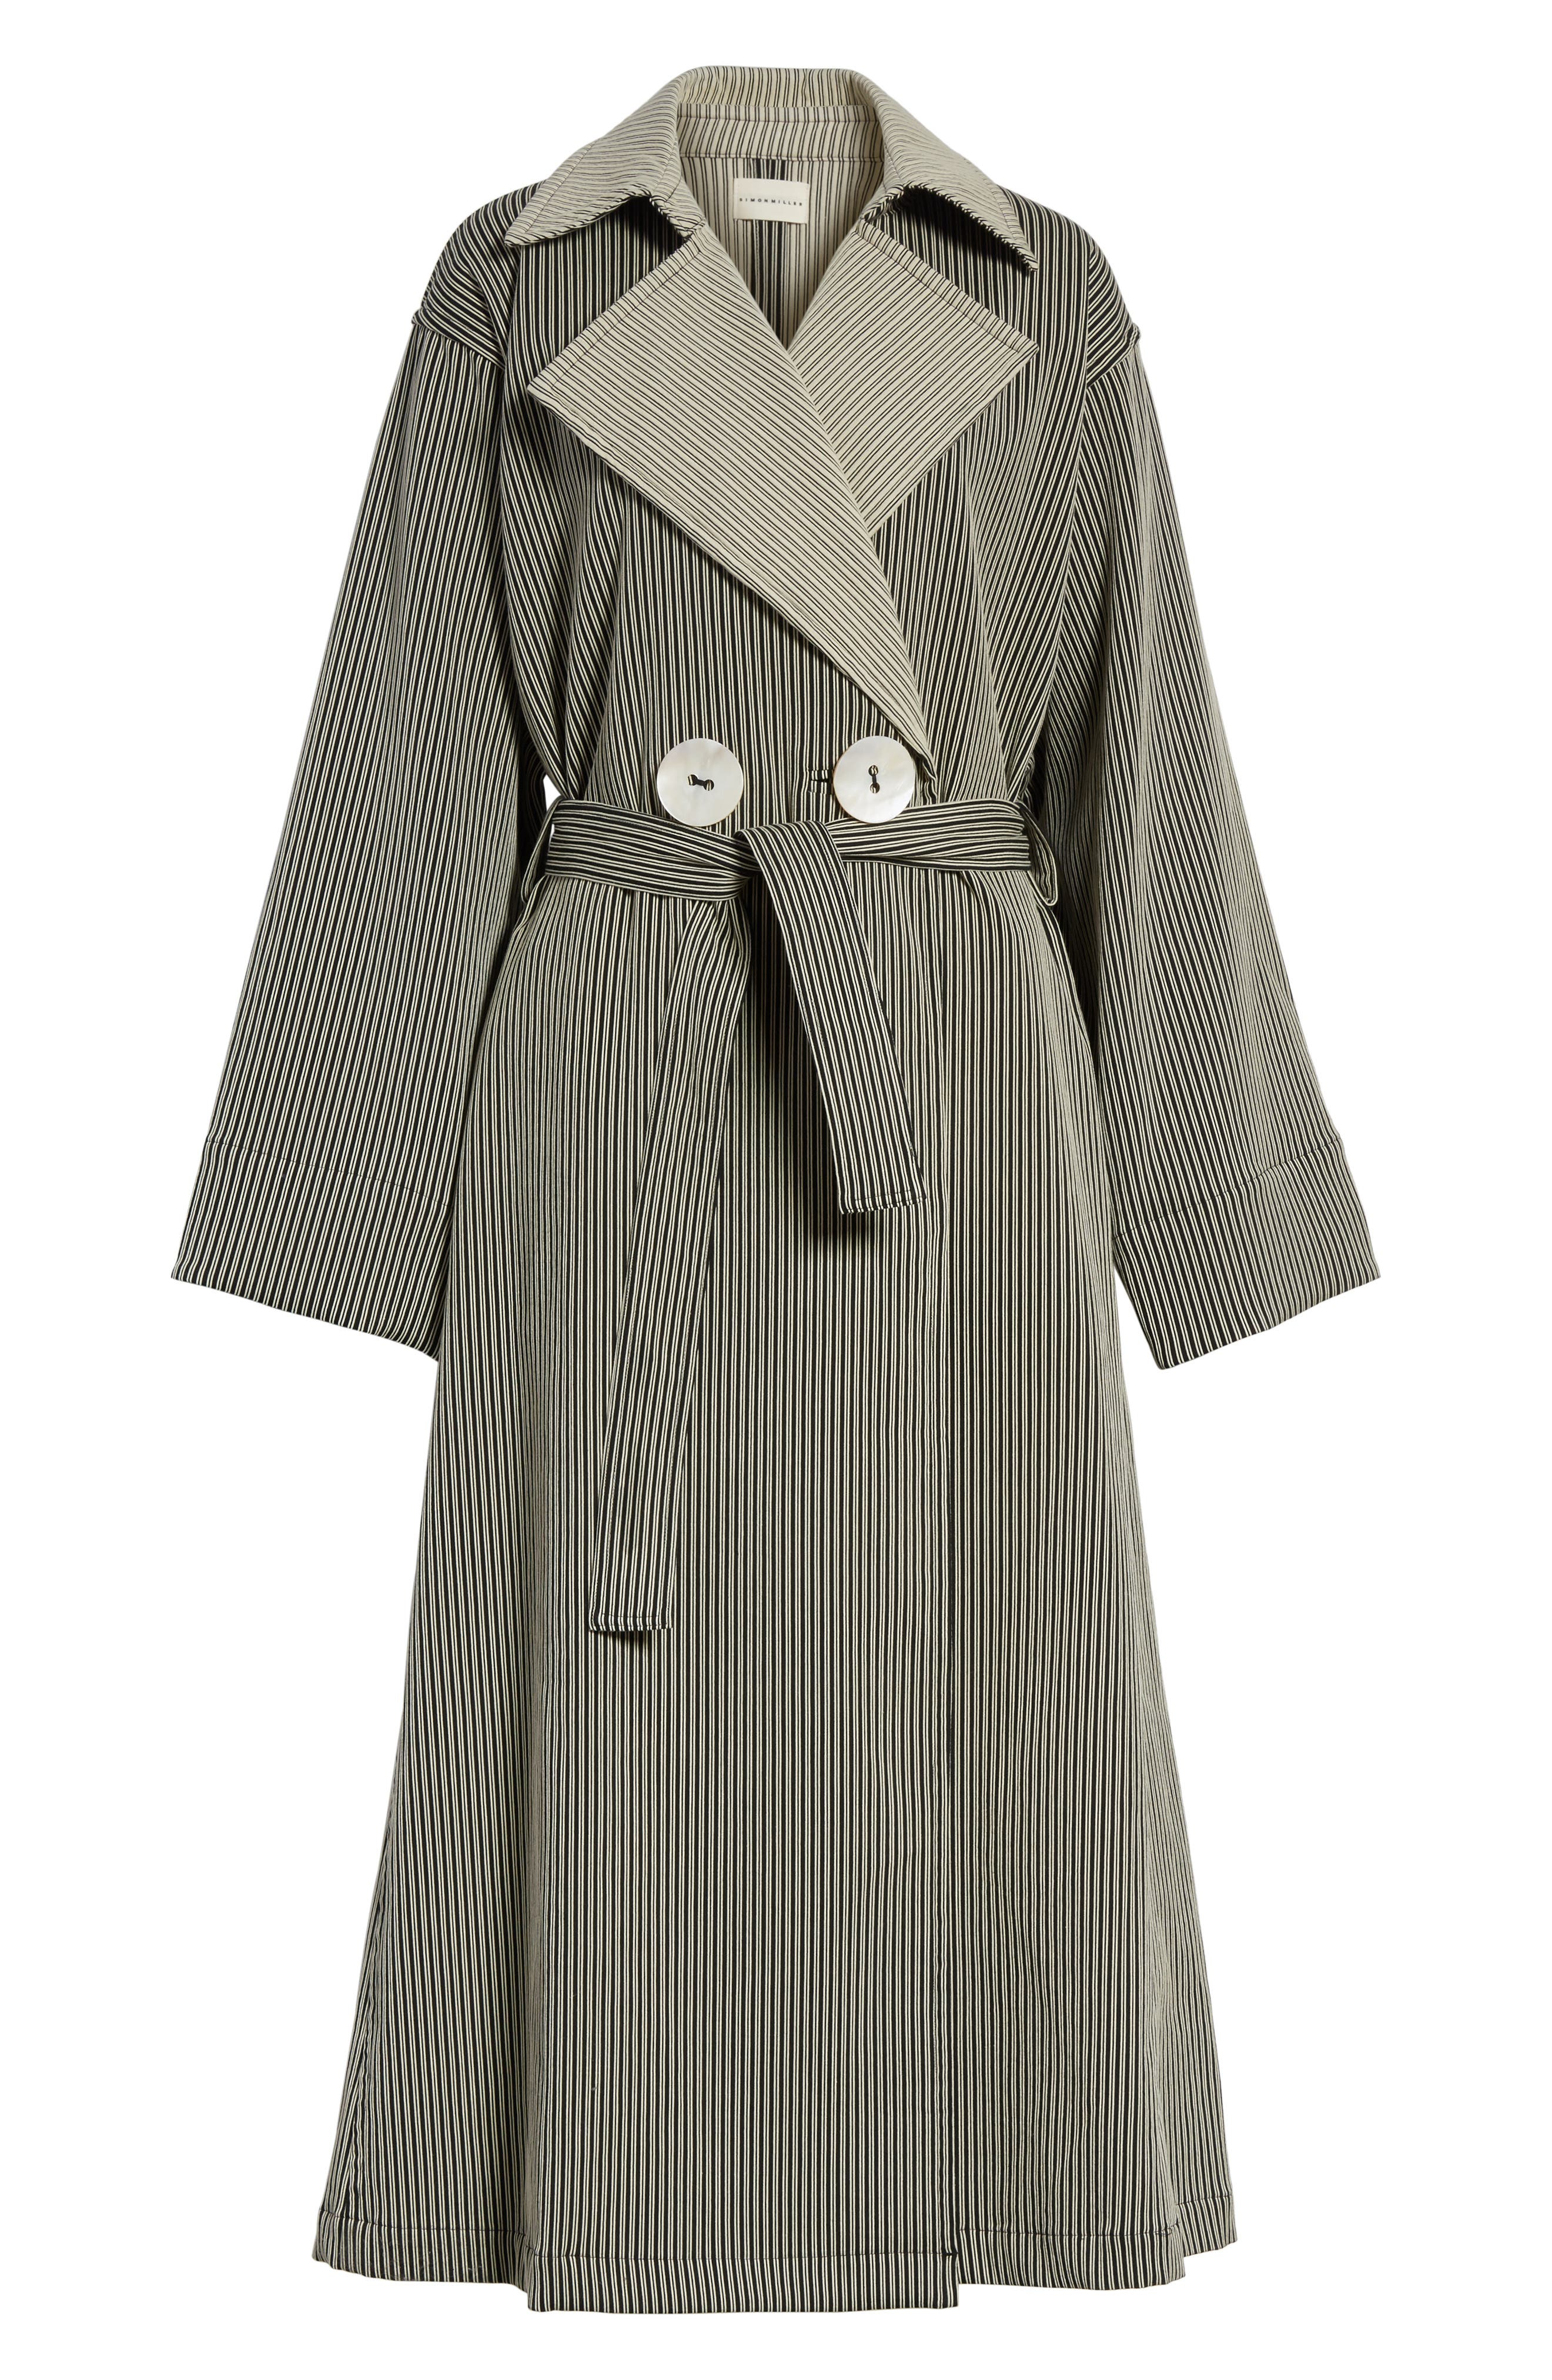 Casco Stretch Pinstripe Trench Coat,                             Alternate thumbnail 5, color,                             250